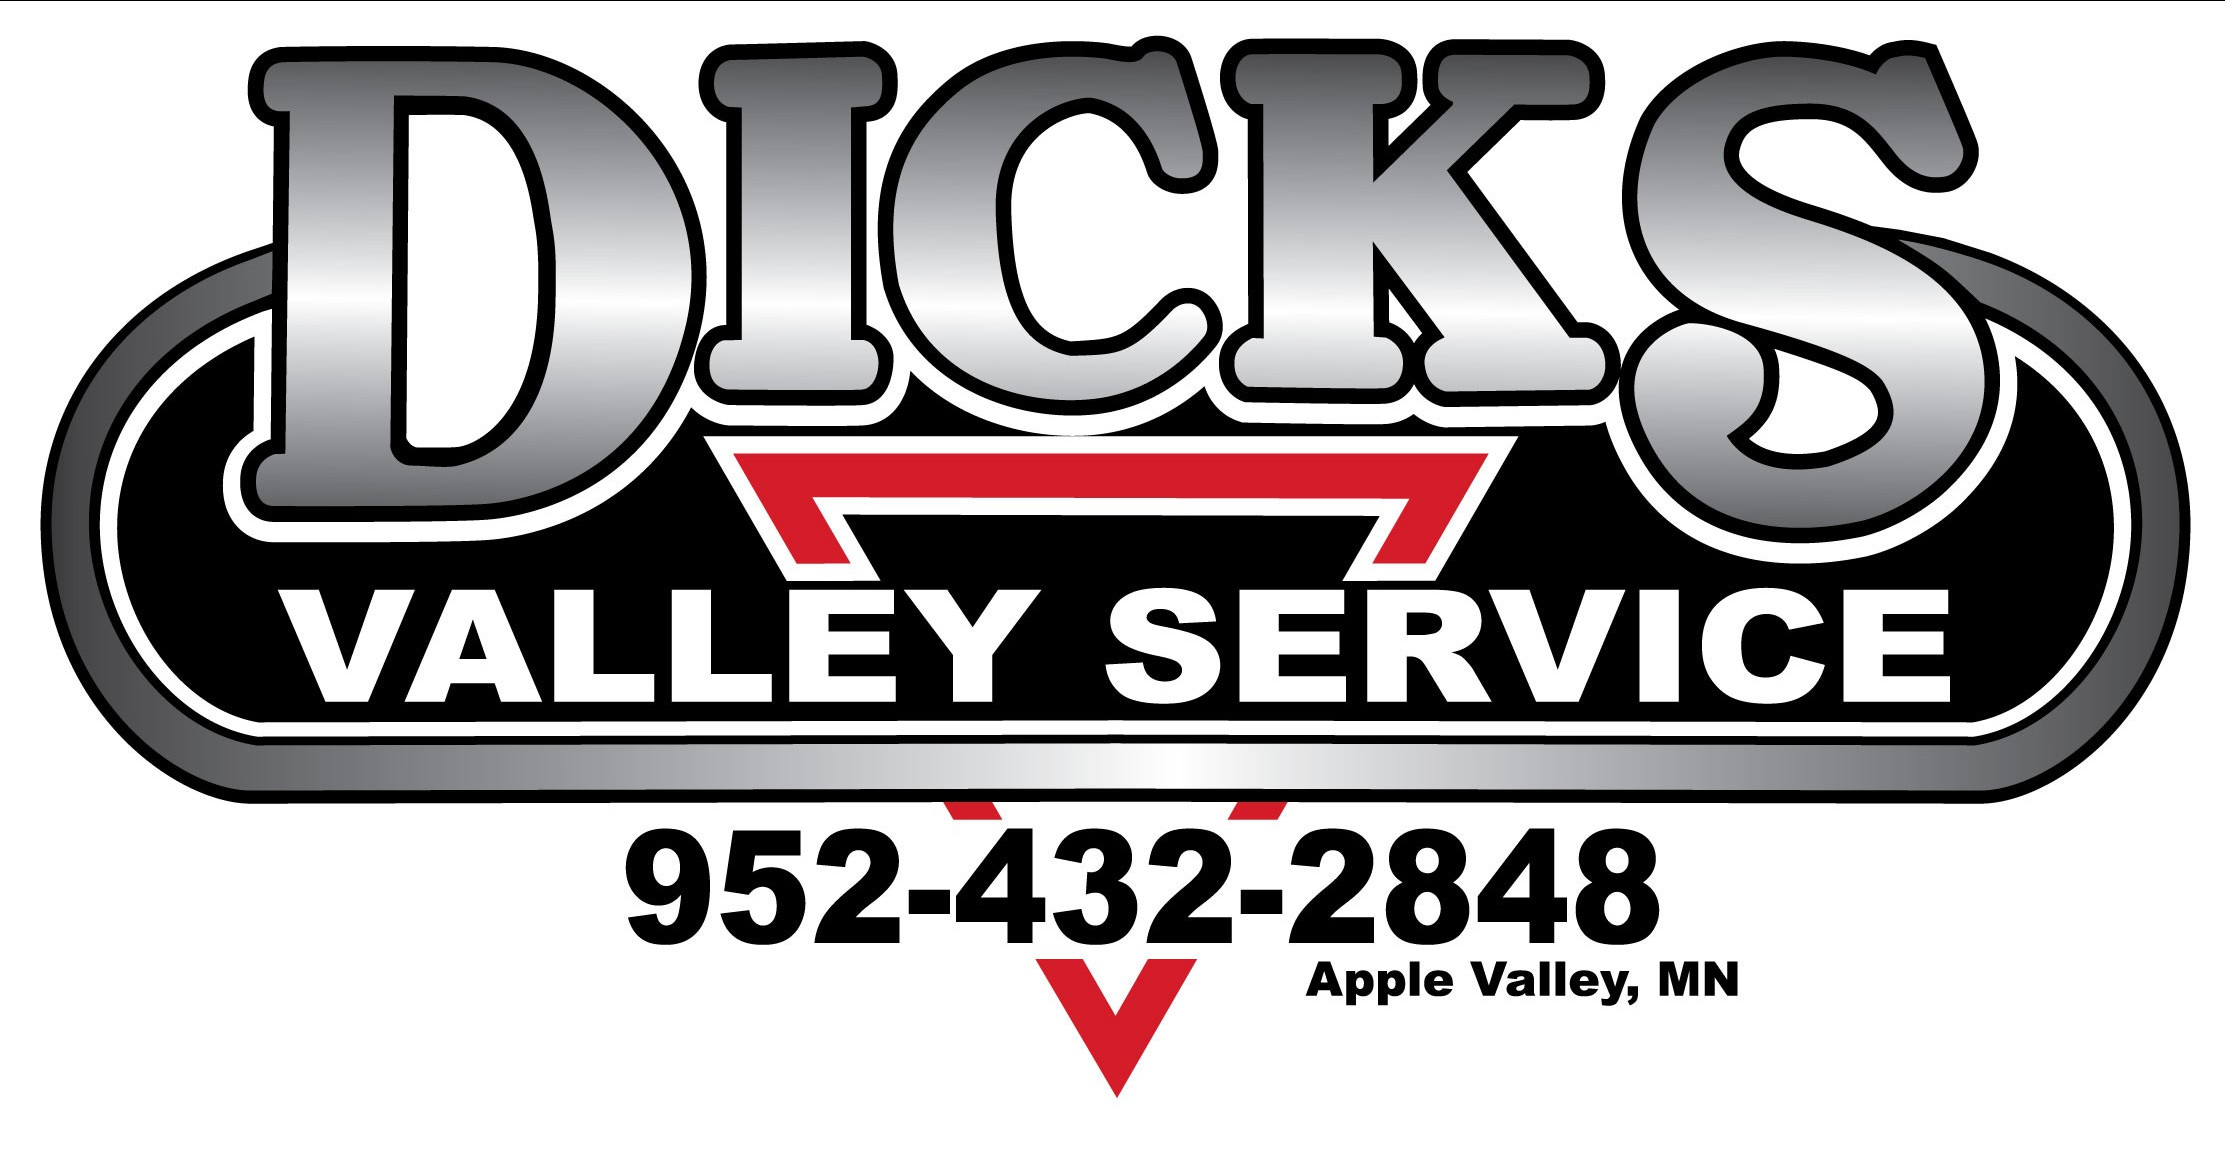 Dick's Valley Service